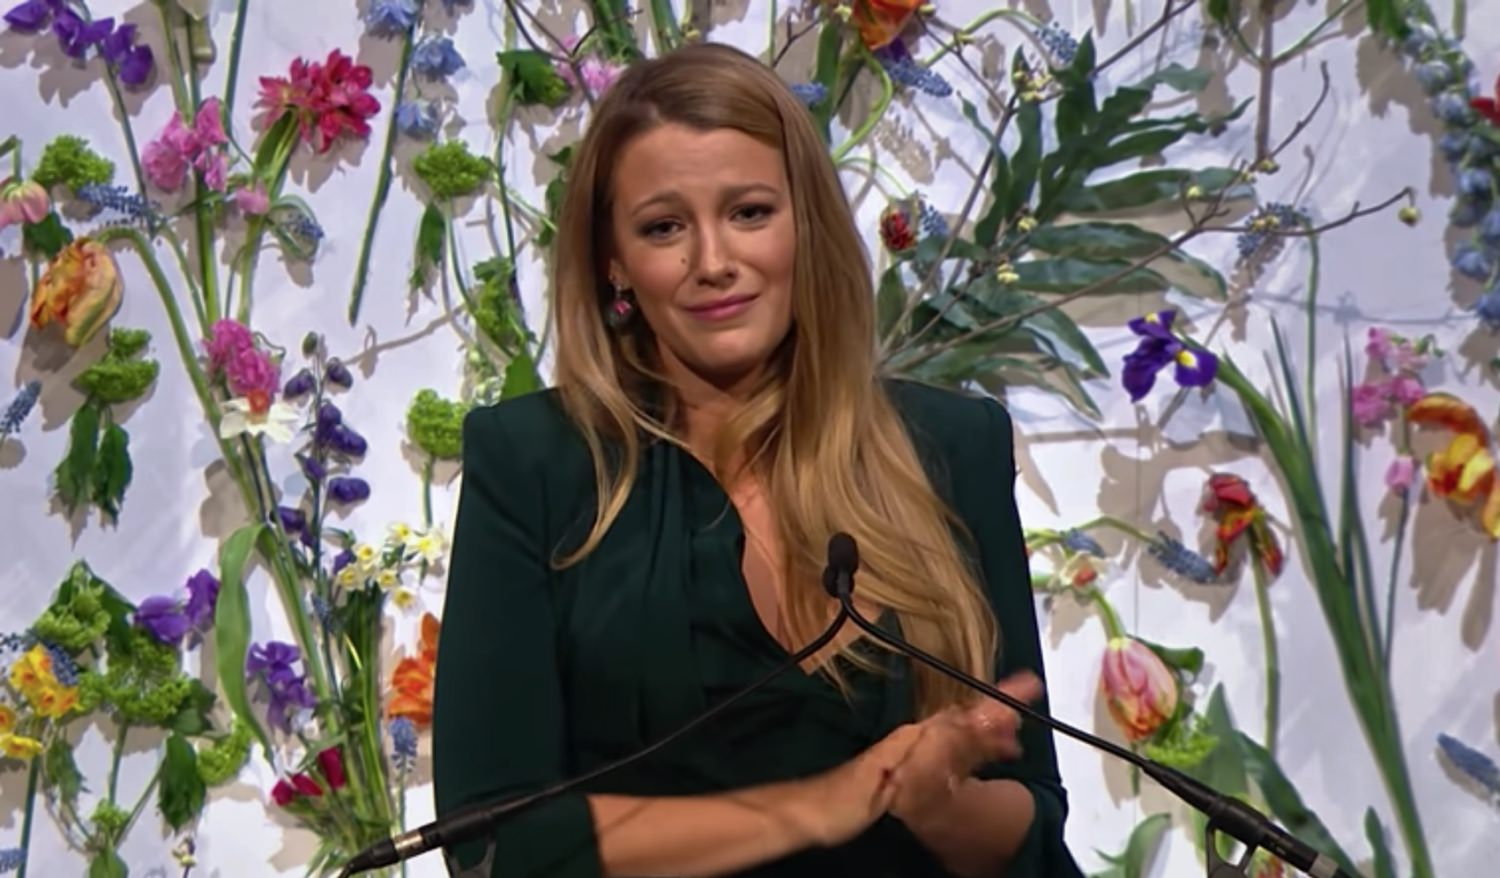 WATCH: Blake Lively Gives Passionate, Heartbreaking Speech About Child Pornography